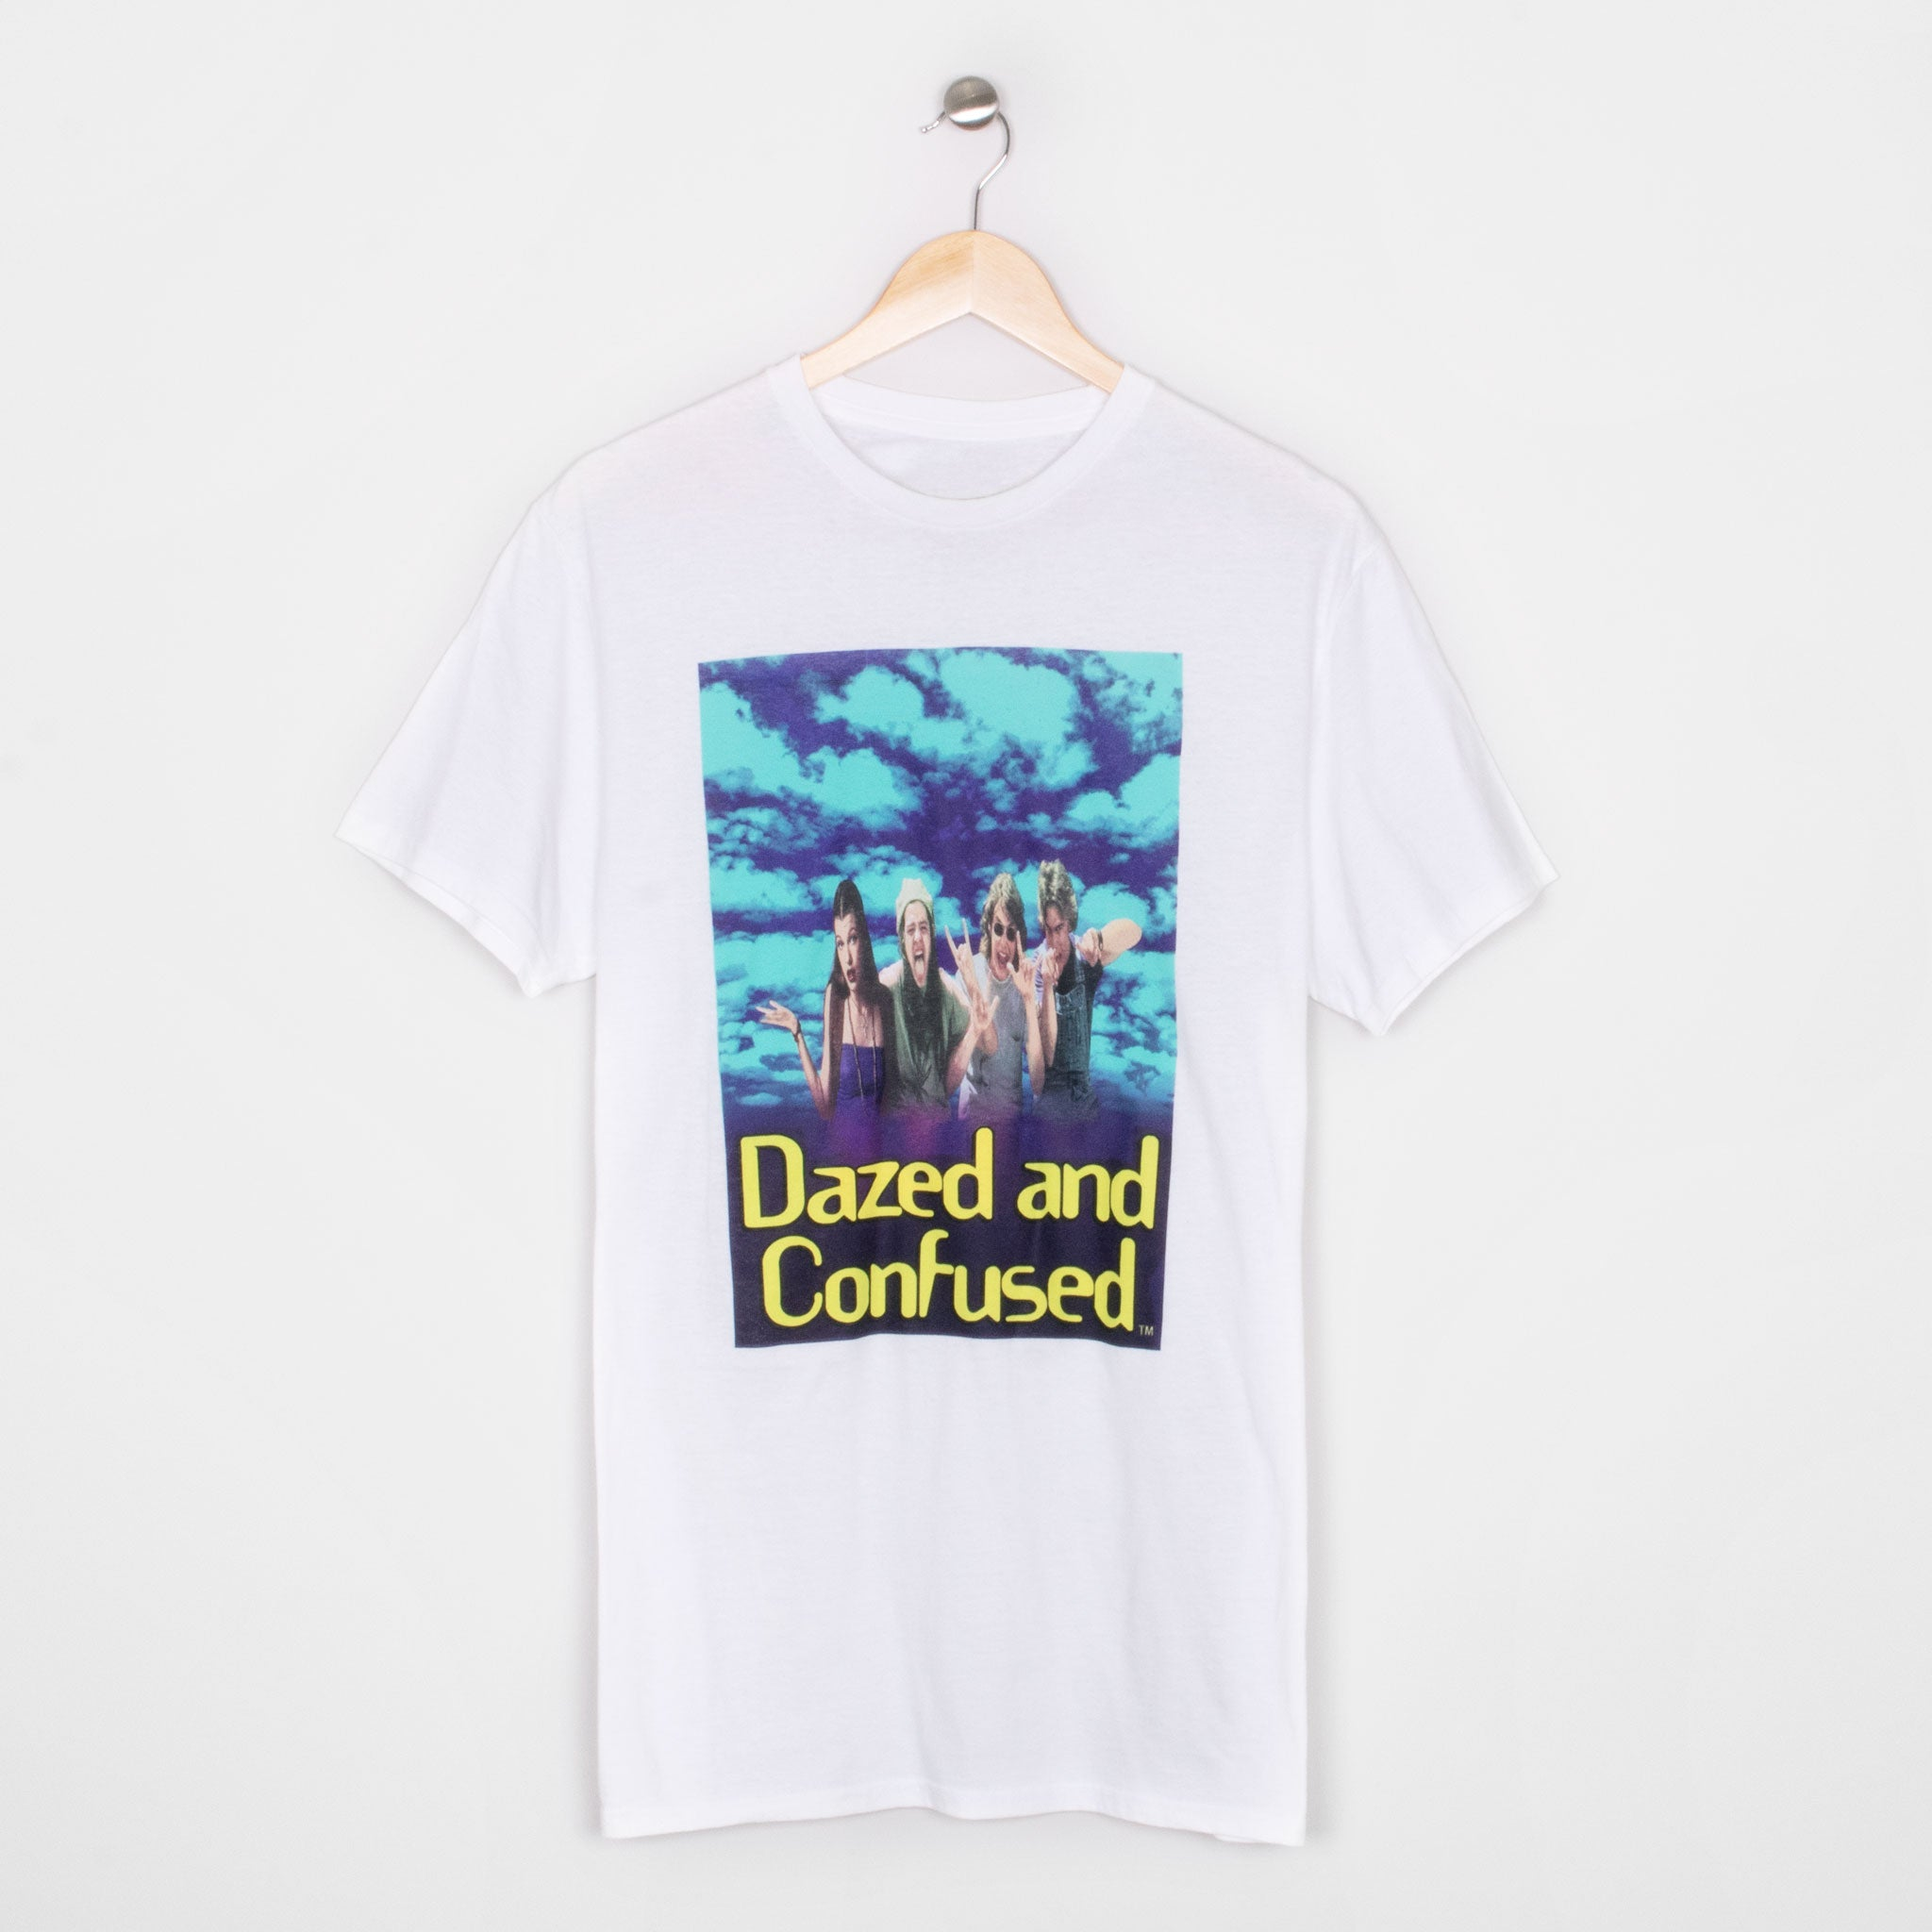 dazed and confused 25th anniversary group t-shirt shirt apparel culturefly